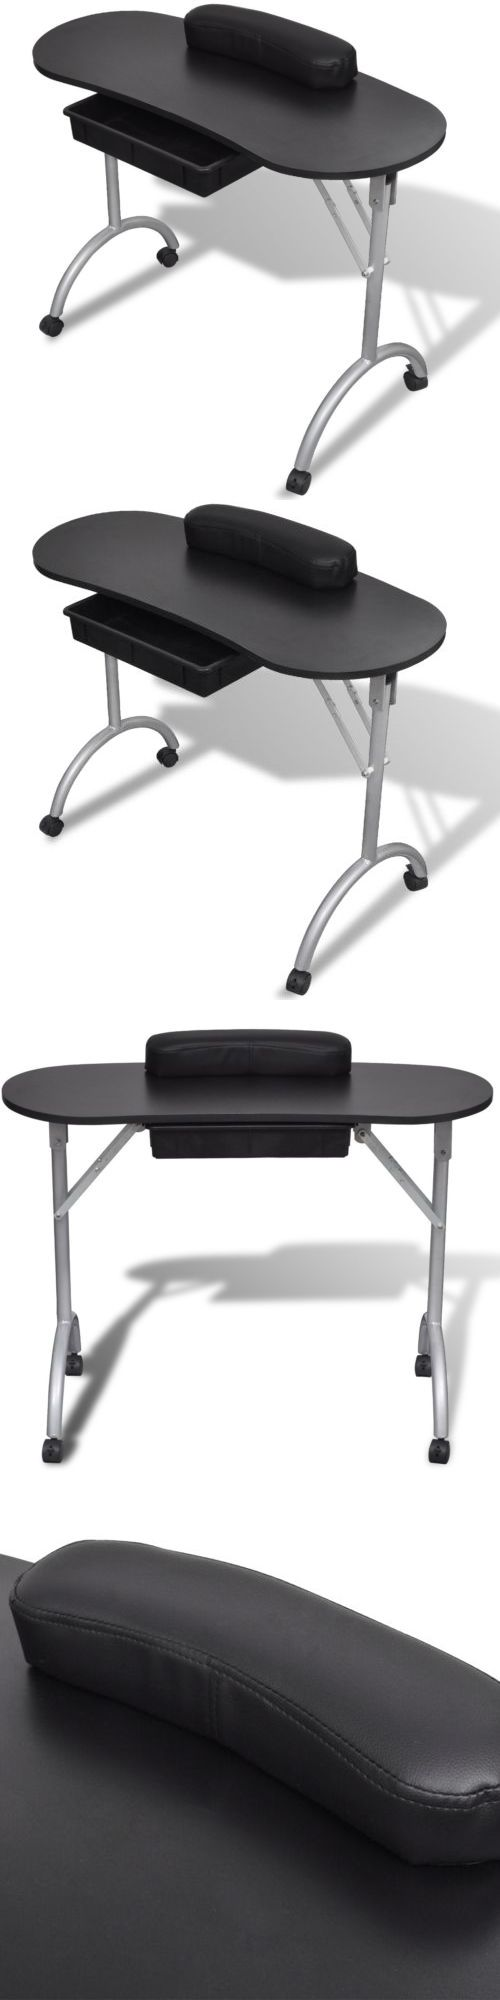 Wood swivel desk chair laquered finish warms amp padded seat ebay - Other Salon And Spa Equipment Large Black Portable Manicure Nail Table Station Desk Spa Beauty